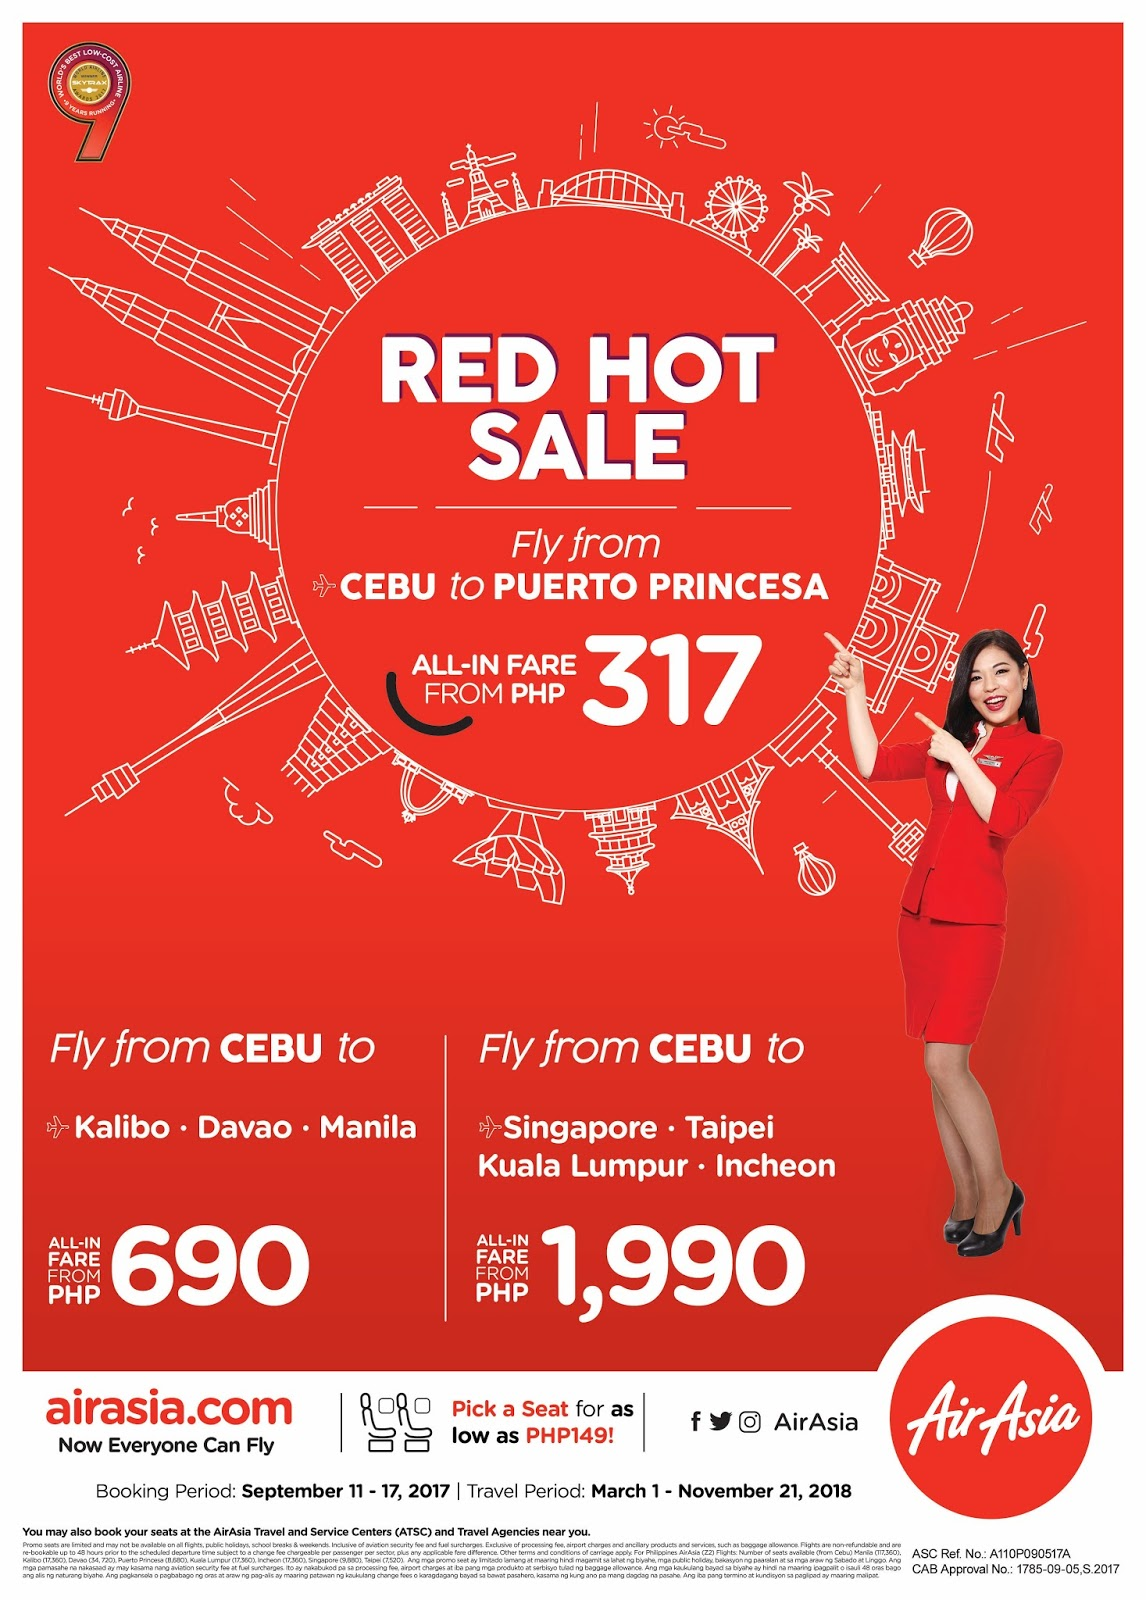 AirAsia Red Hot Sale Cebu